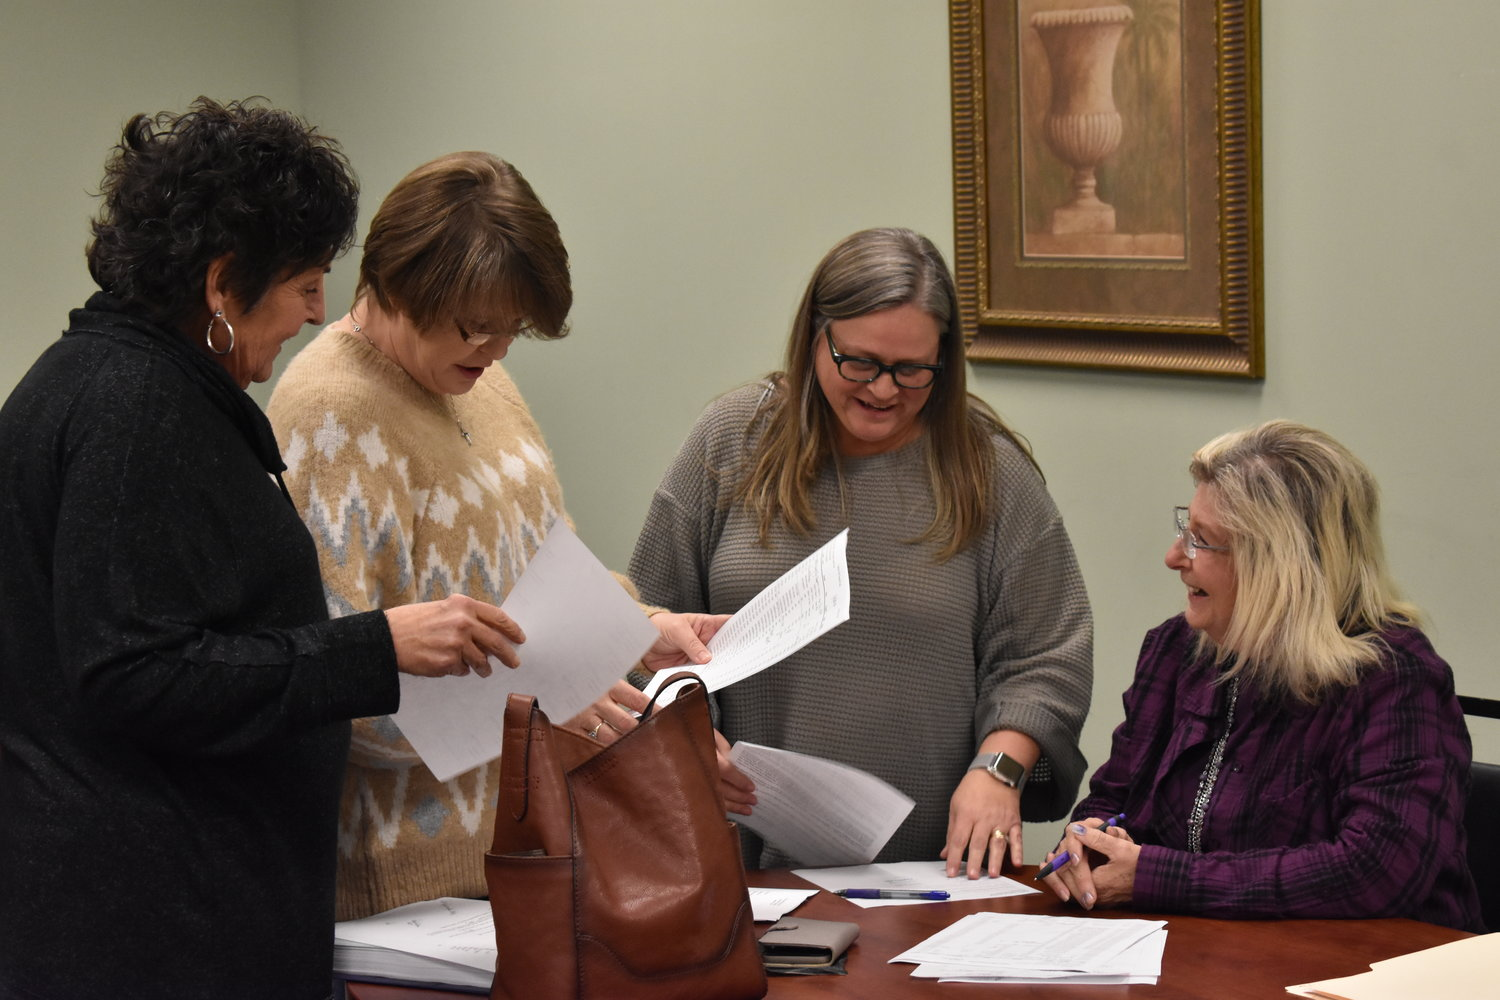 Carbon Hill city officials, after a tough meeting of looking at finances, finally share a light-hearted moment after Monday's council meeting. Talking are, from left, Councilwomen Jewell Hess and April Herron, City Clerk Sherry Garner and Assistant Clerk  Janice Pendley.